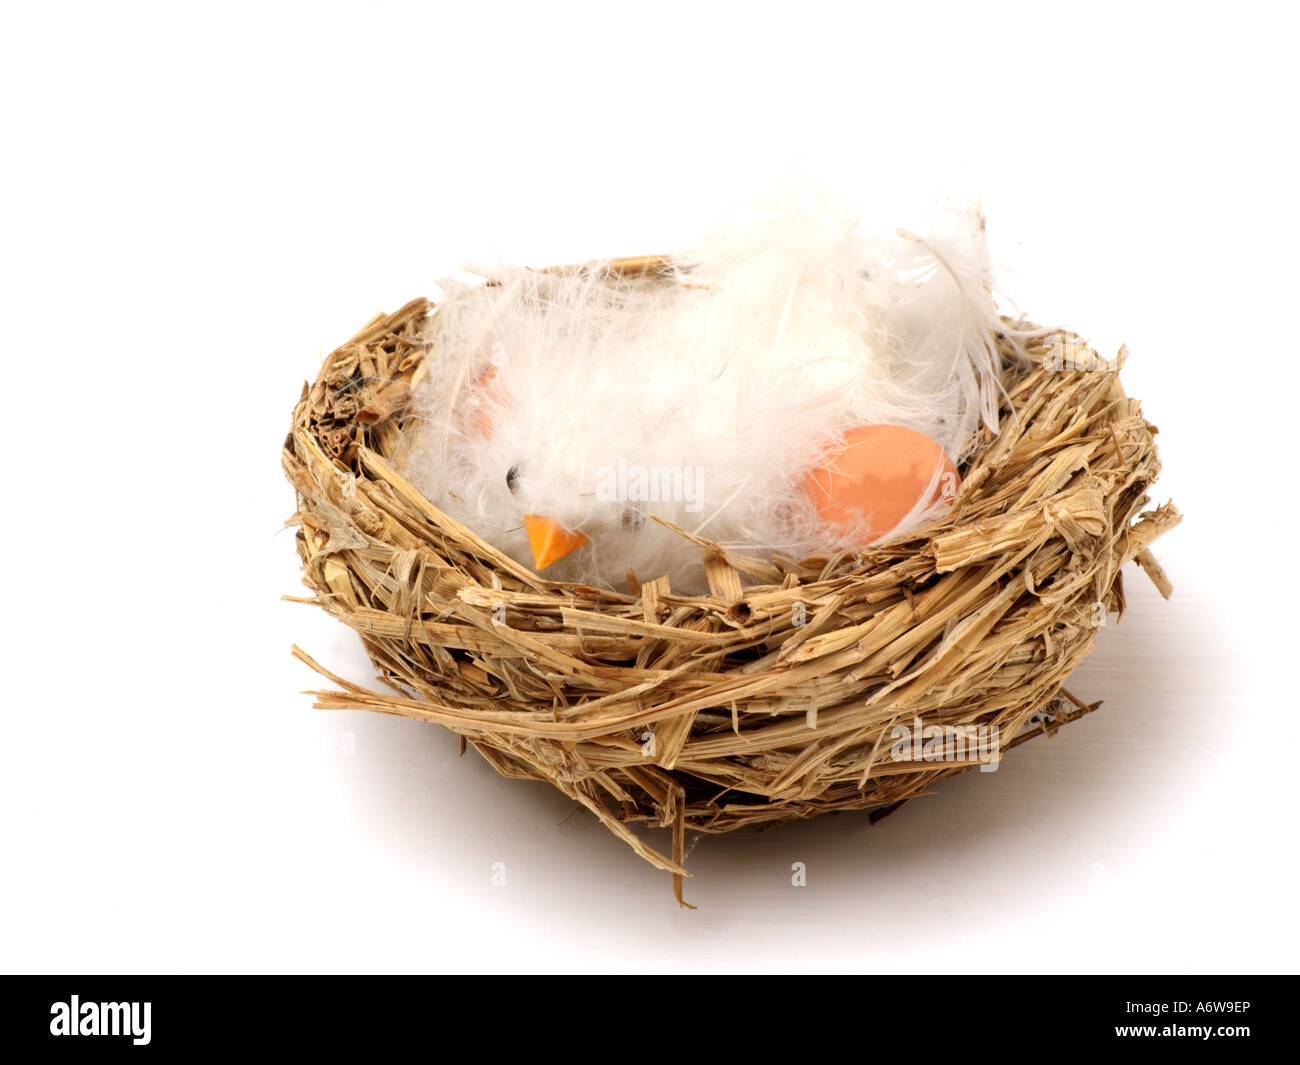 Chick in an Nest - Stock Image